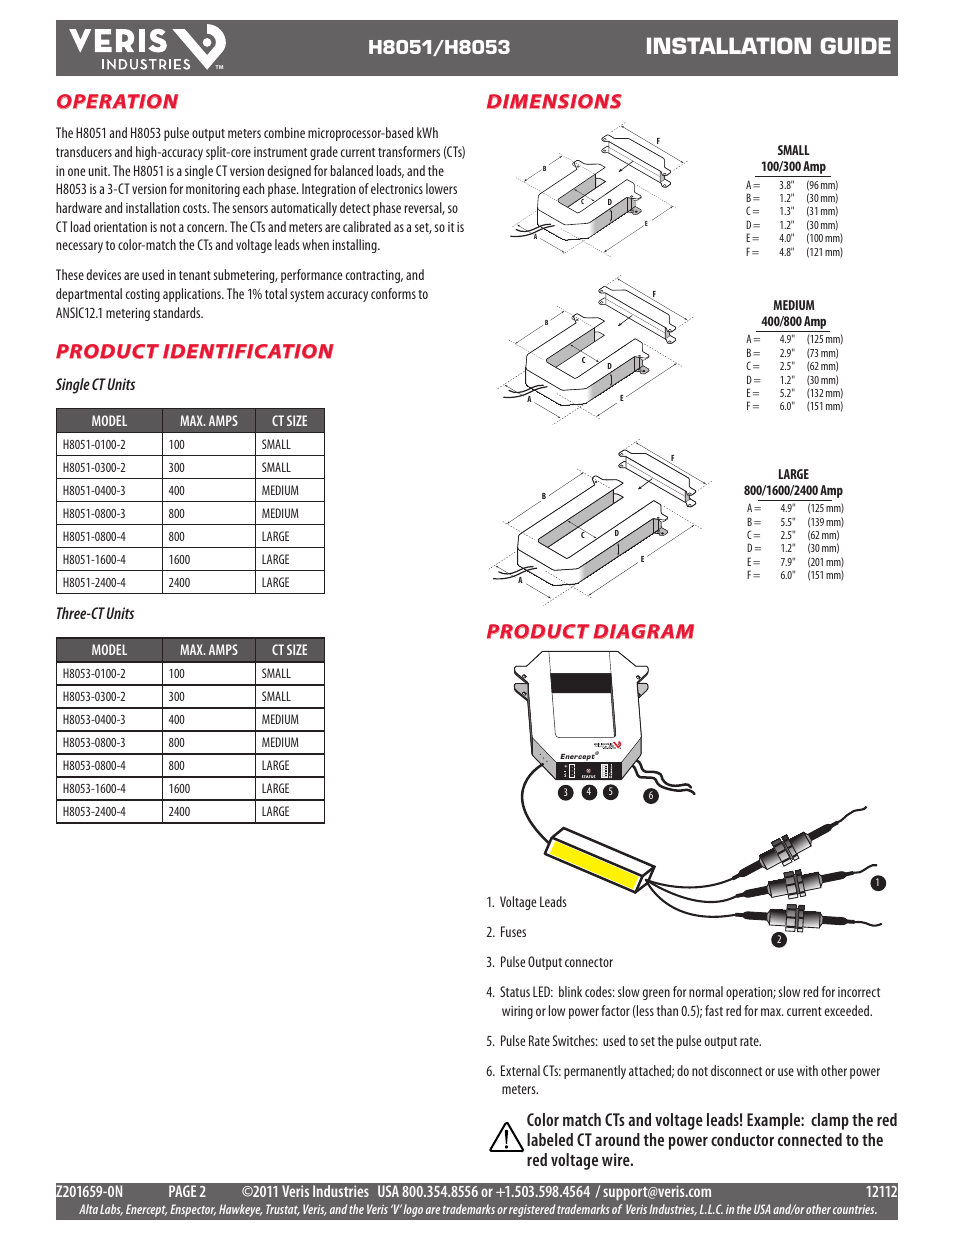 medium resolution of installation guide operation product diagram product identification veris industries h8053 install user manual